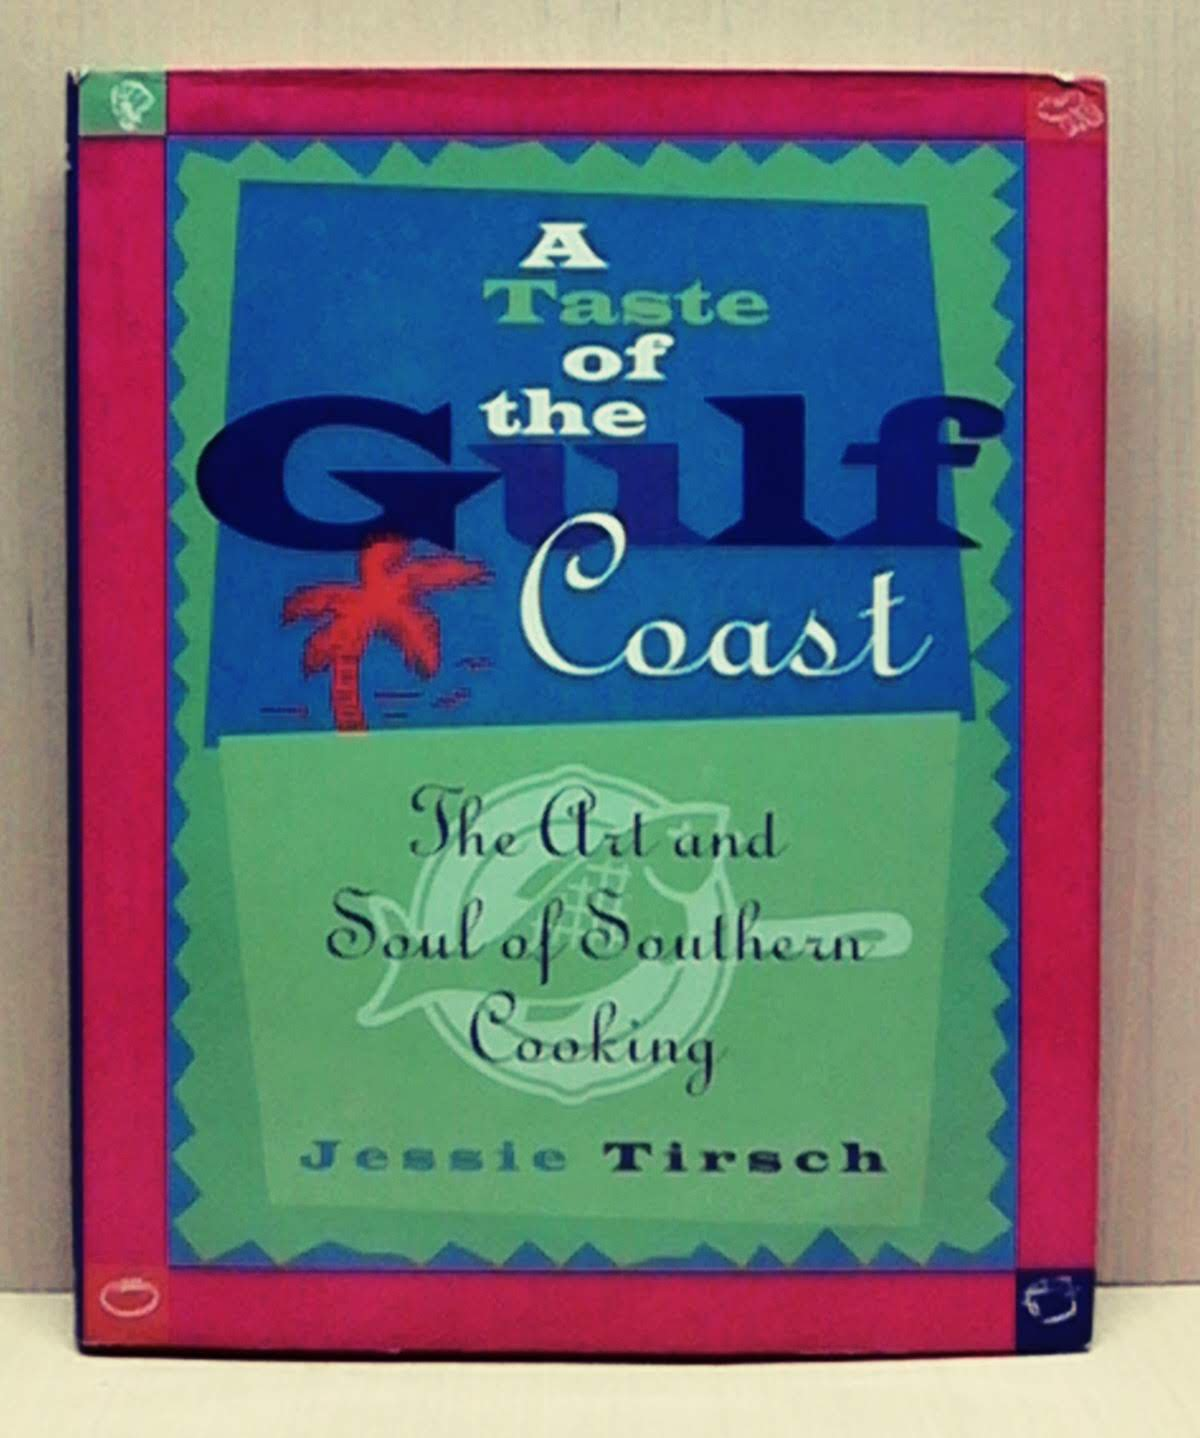 A TASTE OF THE GULF COAST - THE ART AND SOUL OF SOUTHERN COOKING